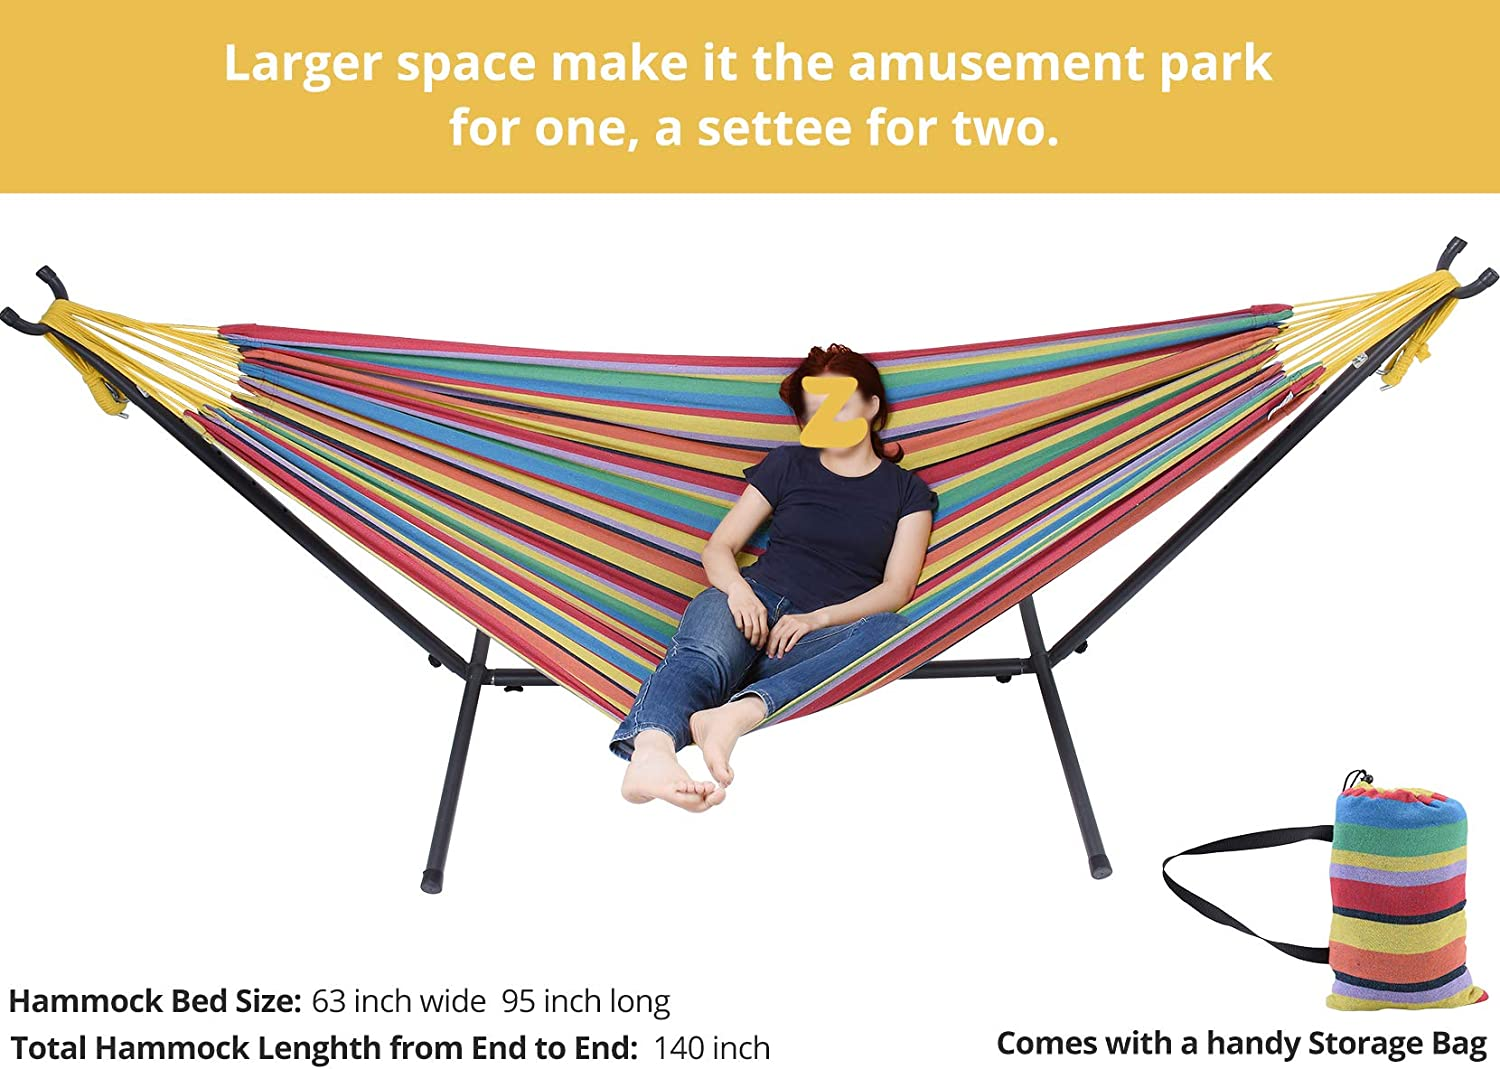 Rainbow Color Adjustable Steel Hammock Stand and Extra-Large Cotton Hammock, Camping Indoor Outdoor Use 550 Pound Capacity Portable for Backyard Zupapa Hammock with Stand 2 Person